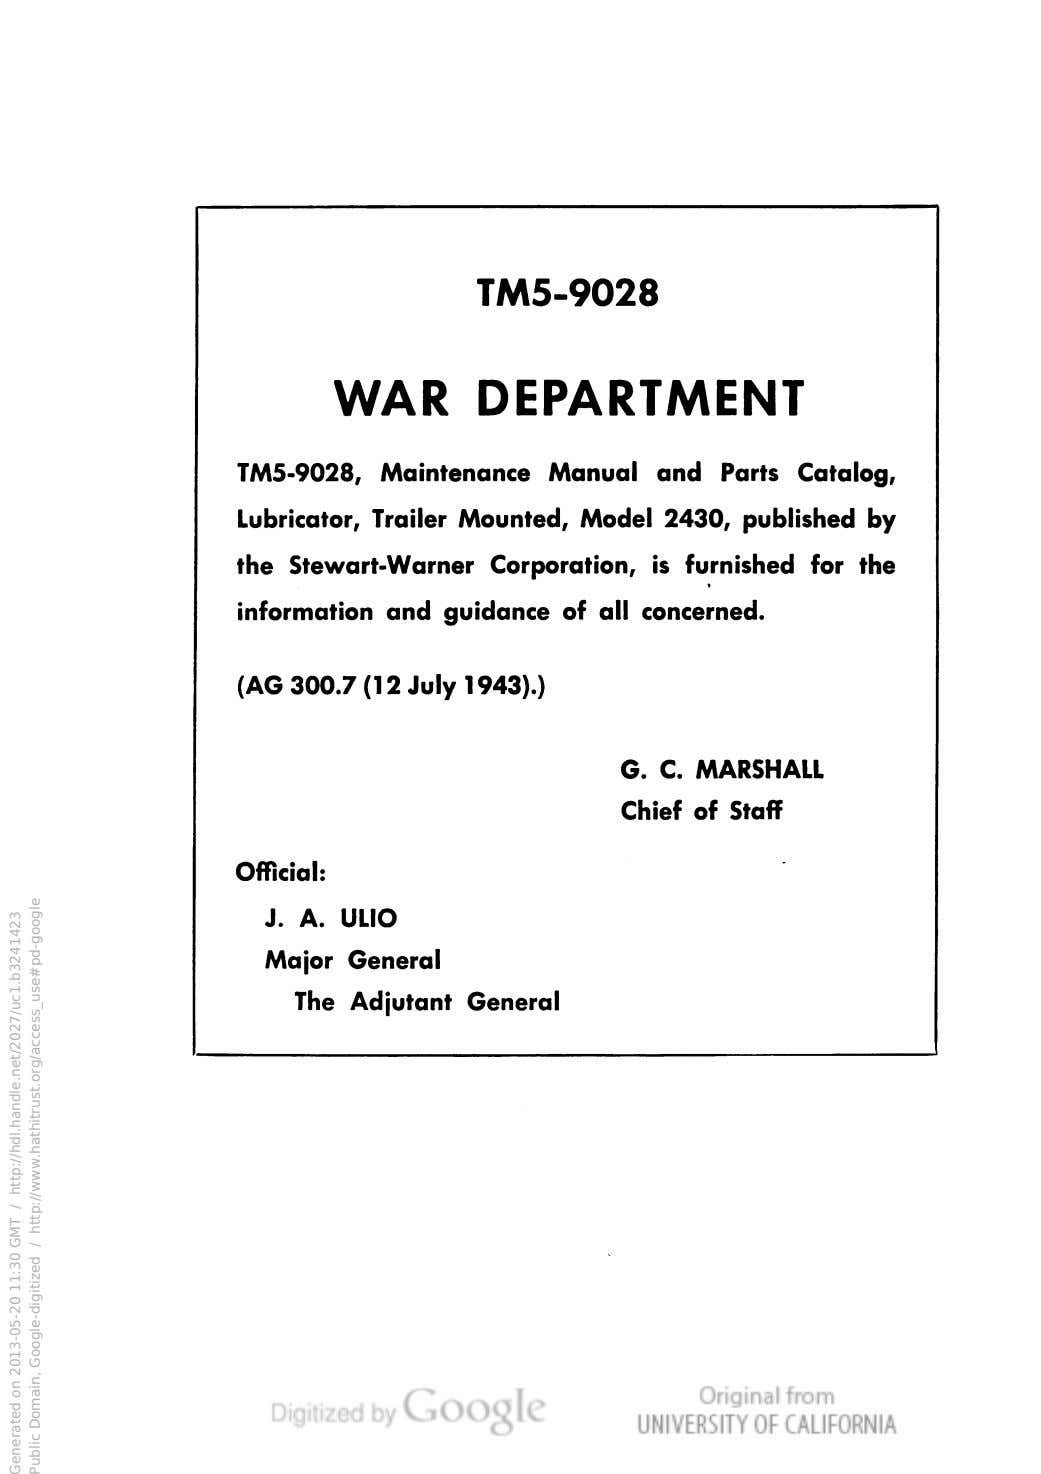 TM5-9028 WAR DEPARTMENT TM5-9028, Maintenance Manual and Parts Catalog, Lubricator, Trailer Mounted, Model 2430,